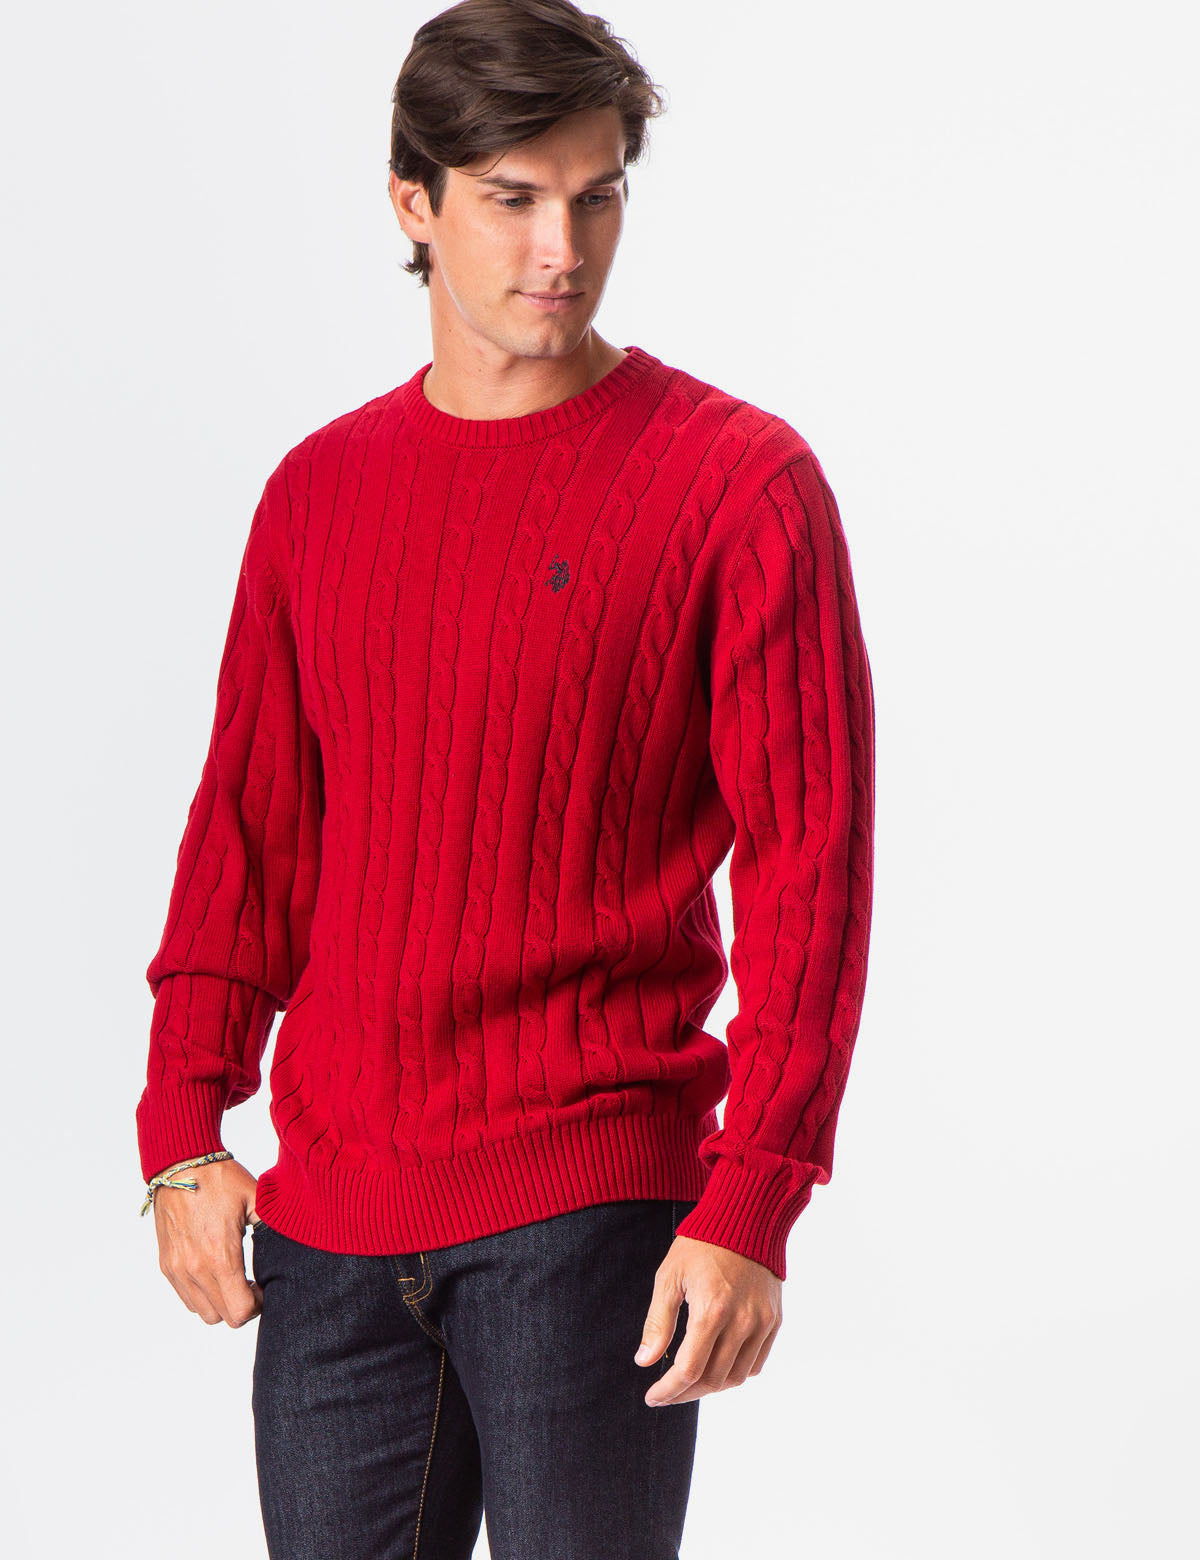 ALL OVER CABLE CREW NECK SWEATER - U.S. Polo Assn.